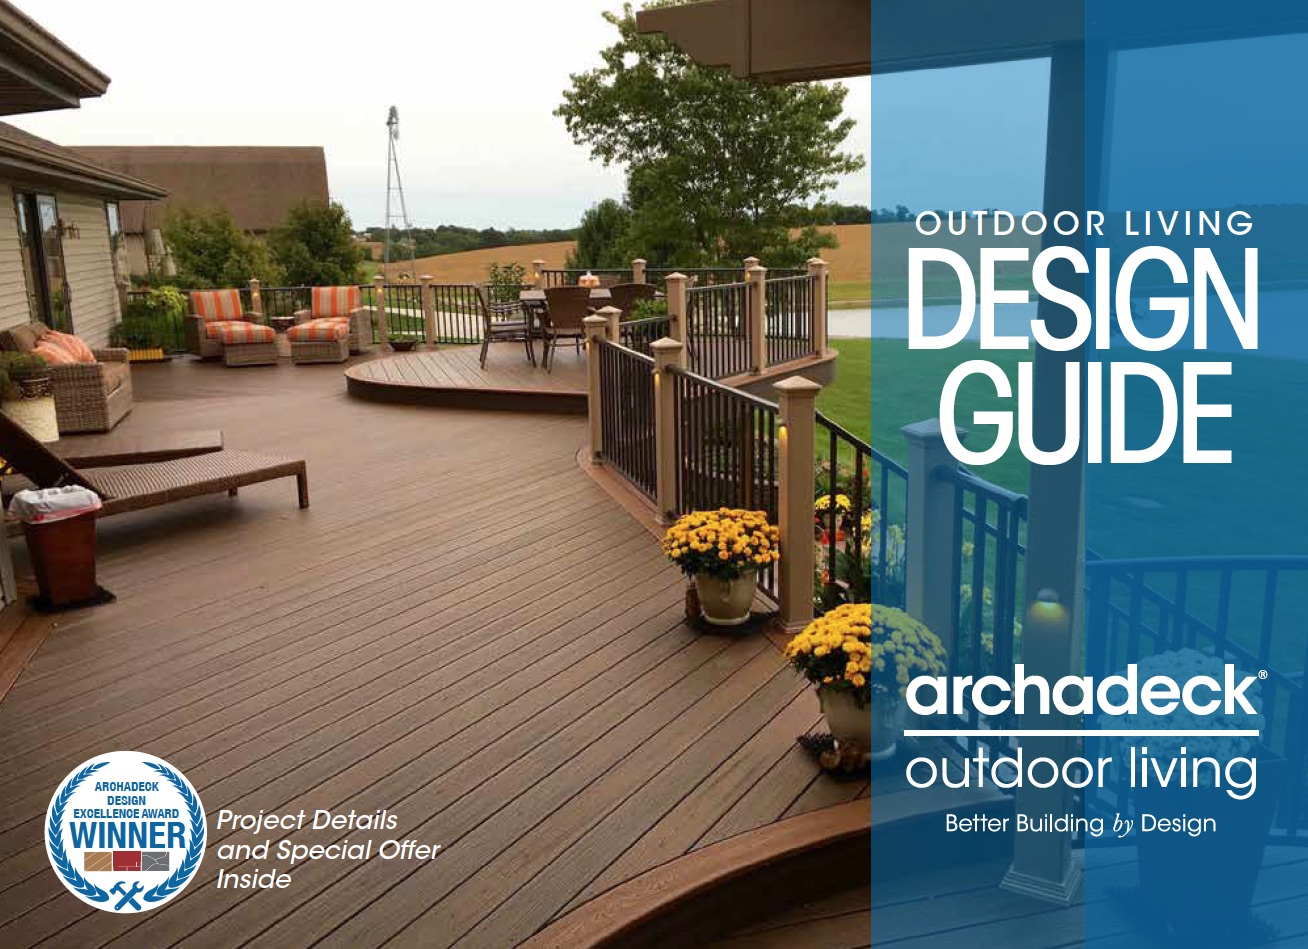 Archadeck Design Guide | Archadeck Outdoor Living